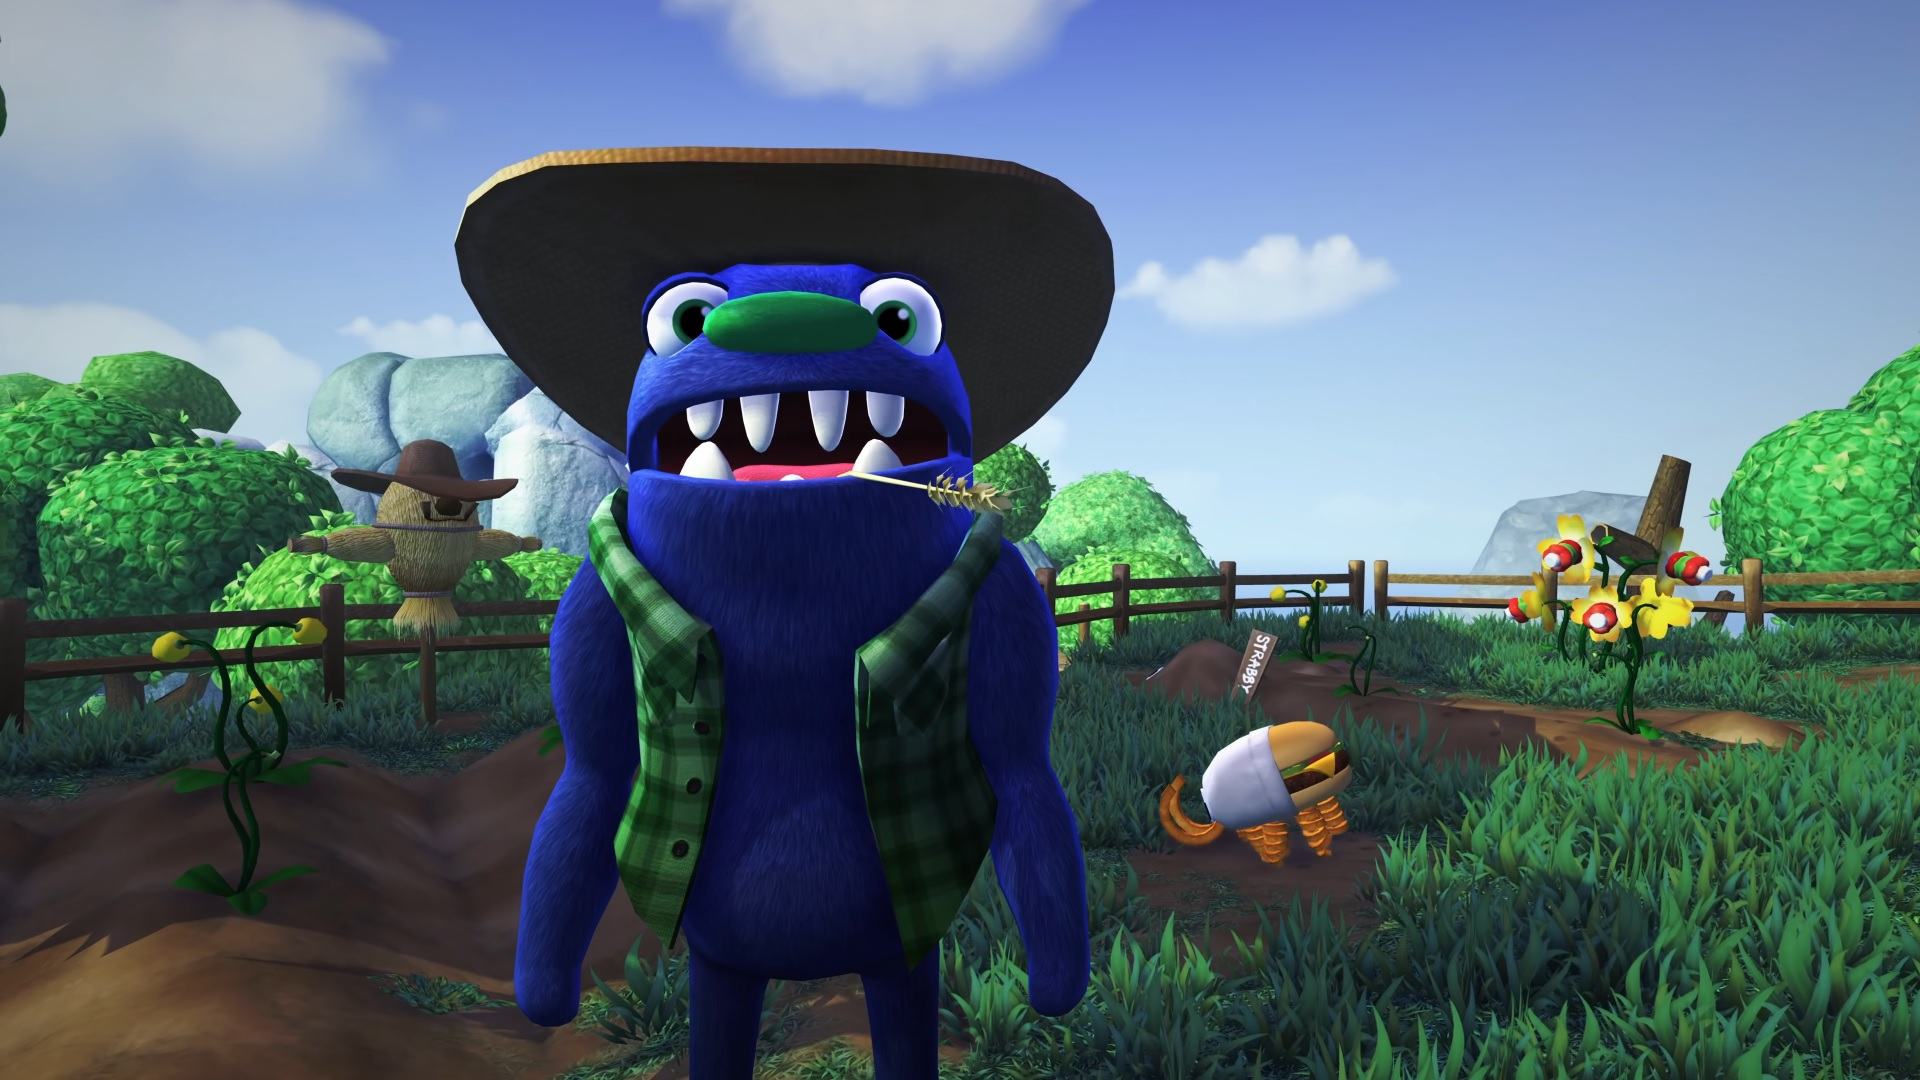 A purple fuzzy farmer with a straw hat, chewing a stalk of wheat, talks to the camera. In the background is a field with a wooden fence, inside which a burger with curly fry legs capers about.